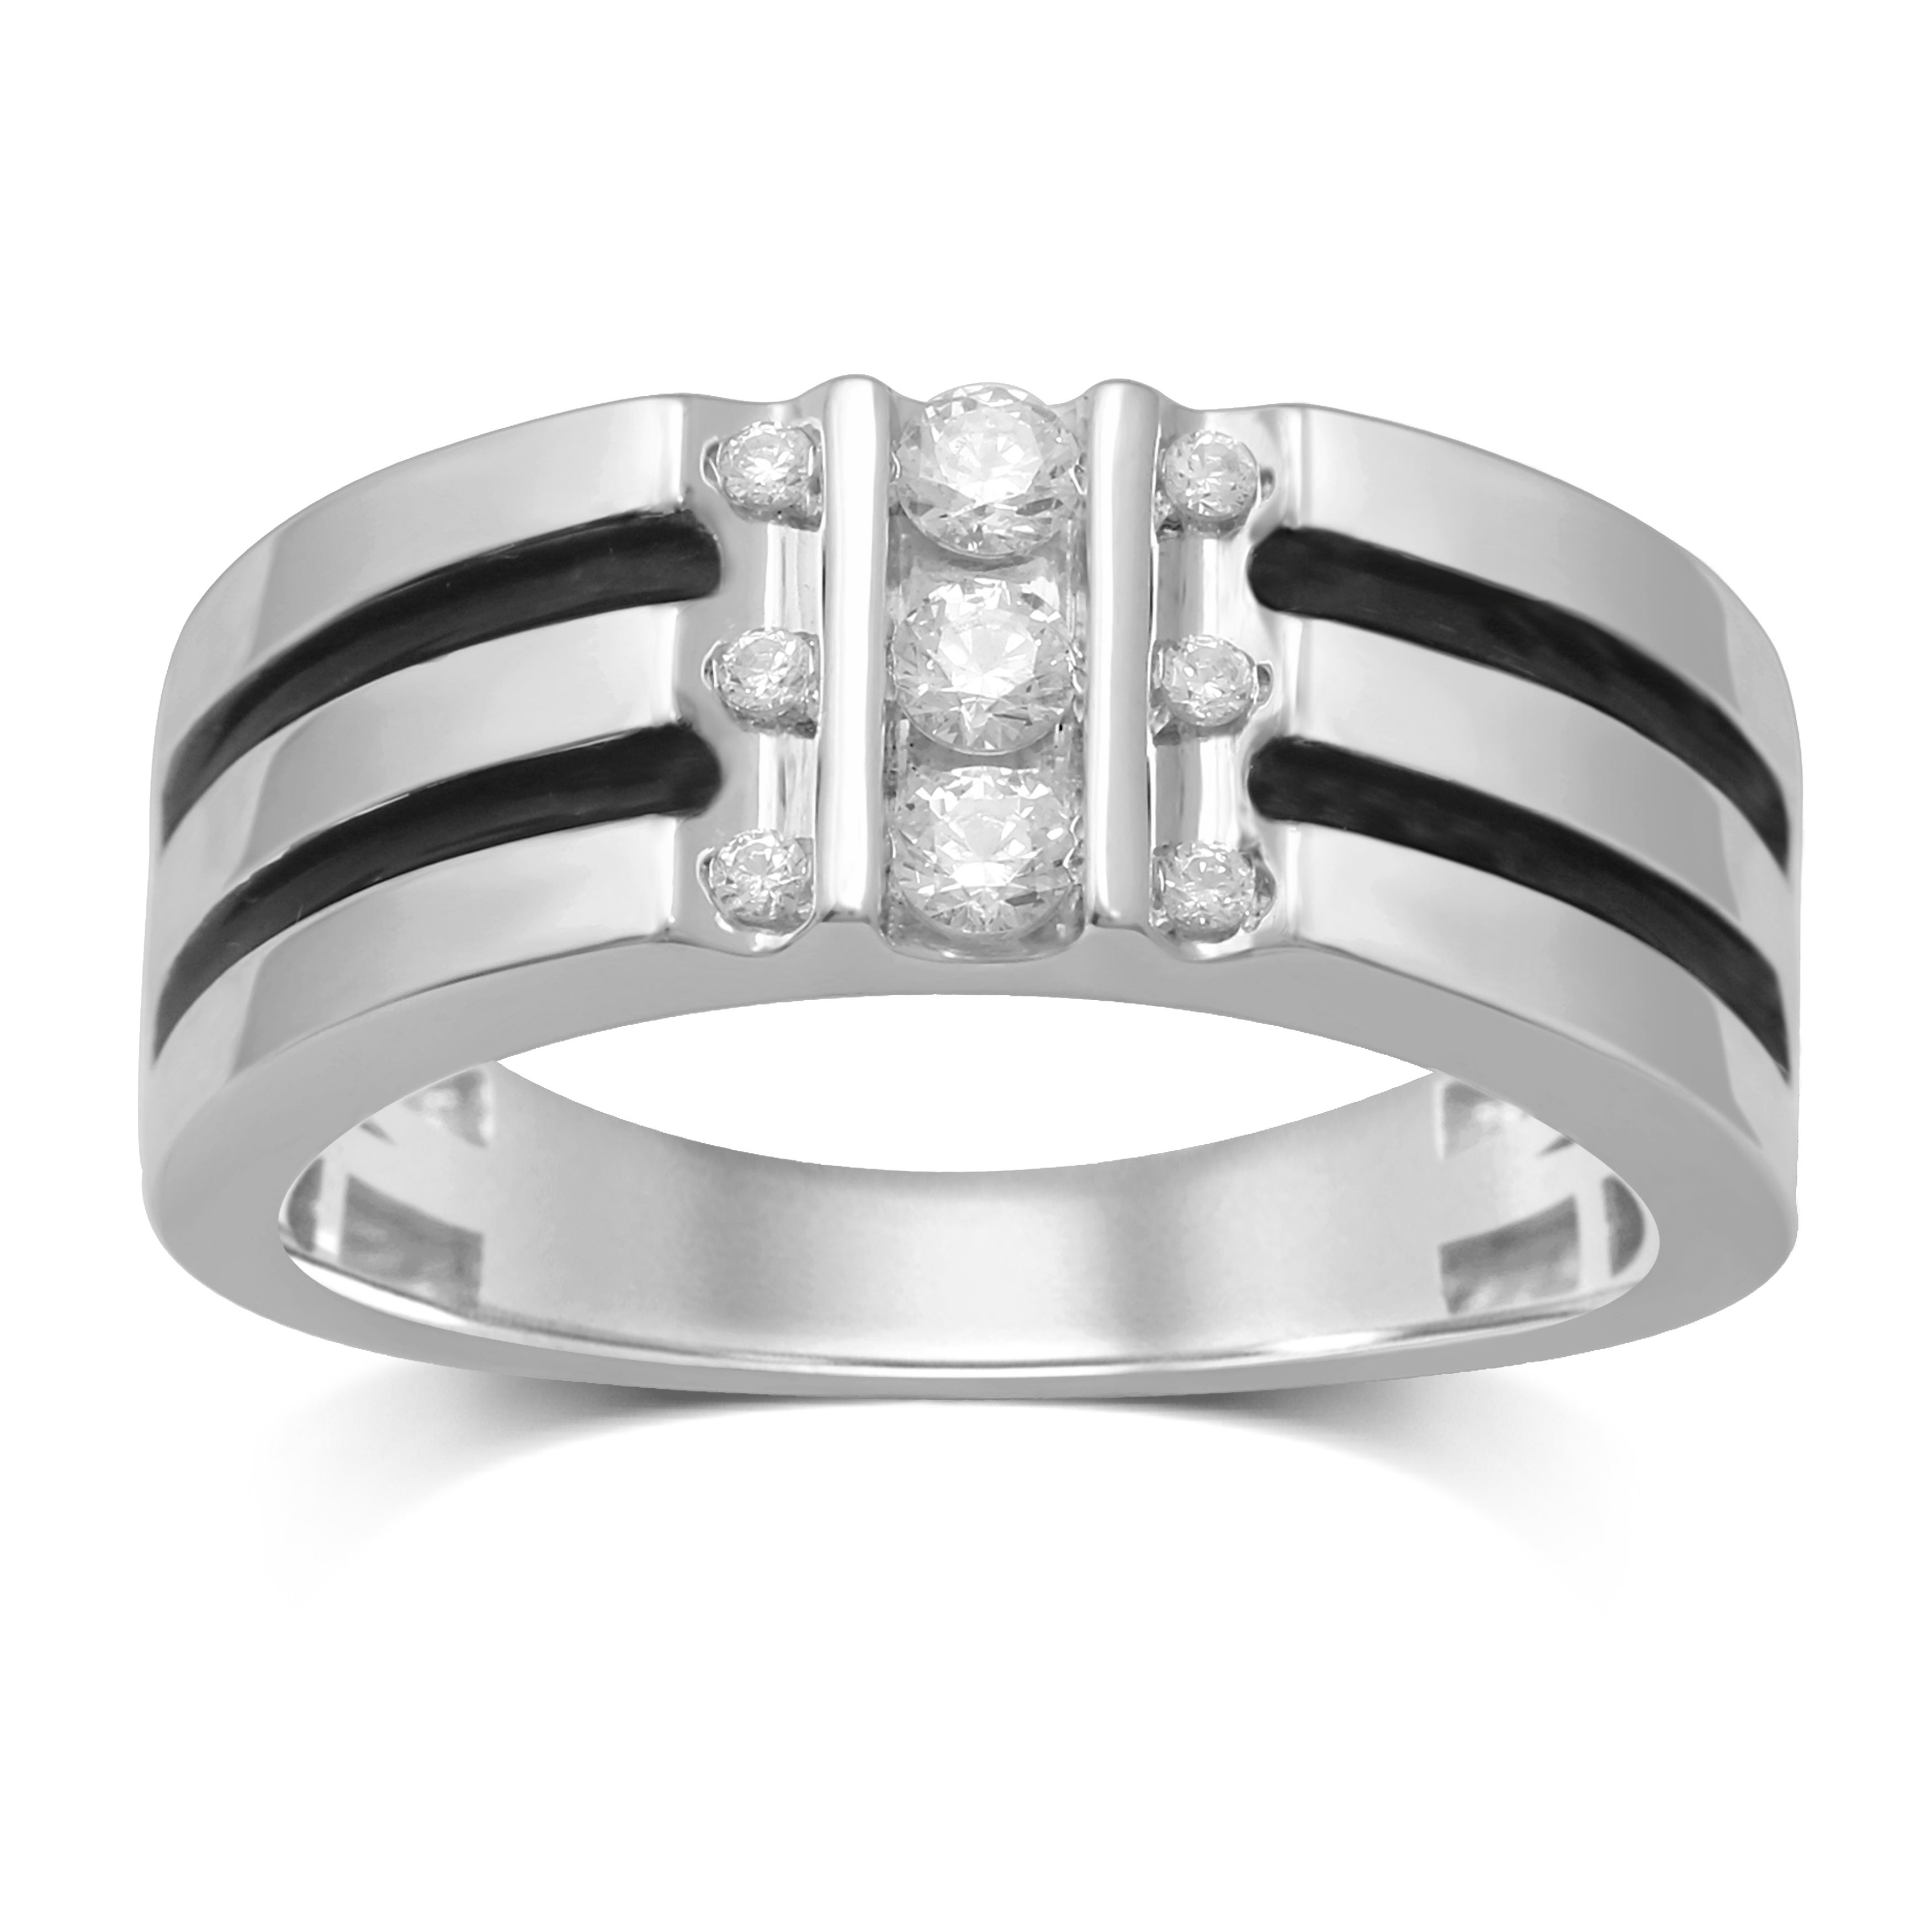 Details About Unending Love 10k White Gold Diamond Vertical Set Band Intended For 2017 Vertical Diamond Row Wedding Bands (View 13 of 25)